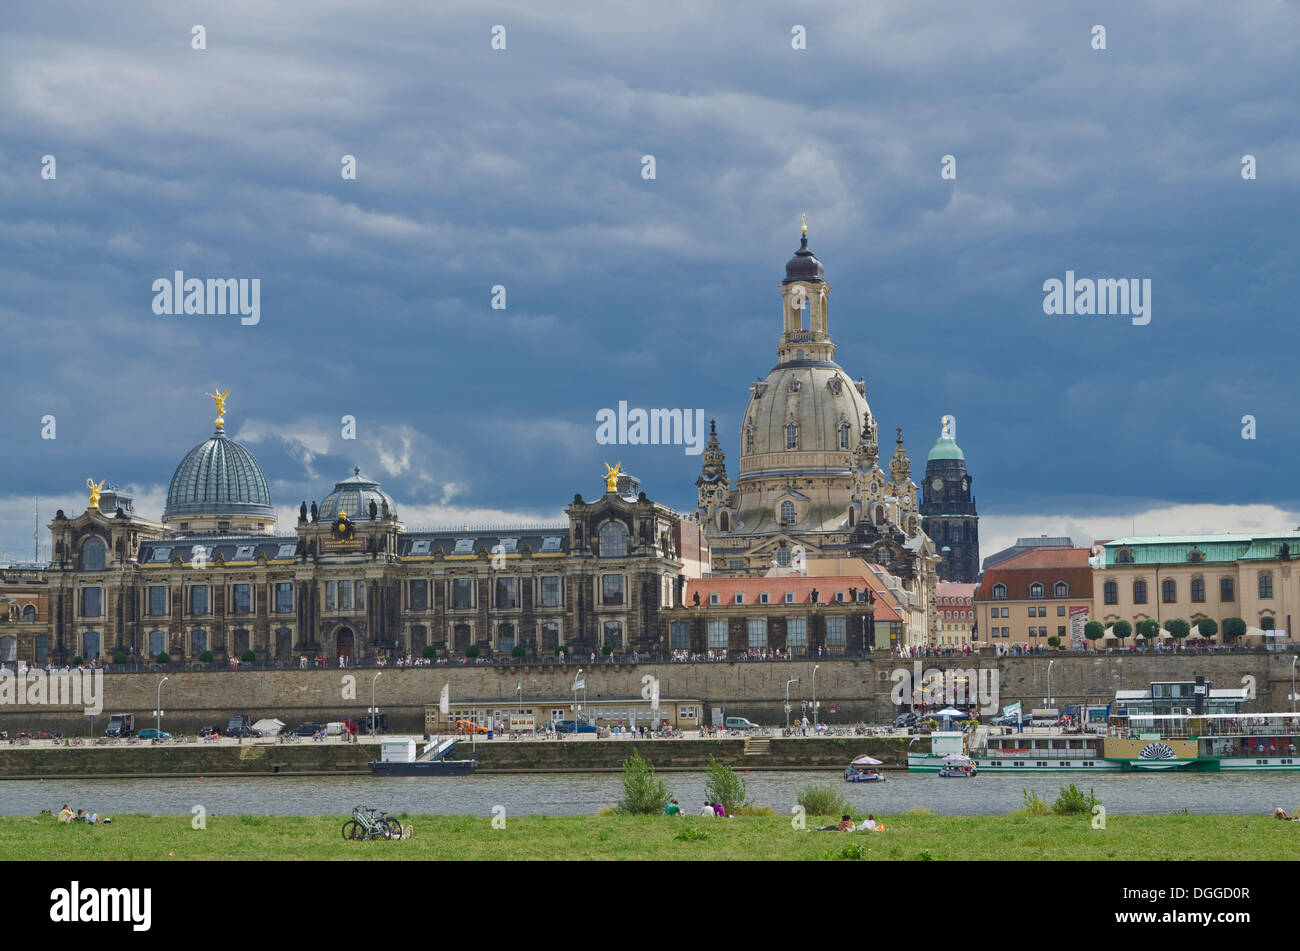 Bruehl's Terrace and Frauenkirche church, as seen across the river Elbe, Dresden, Saxony - Stock Image